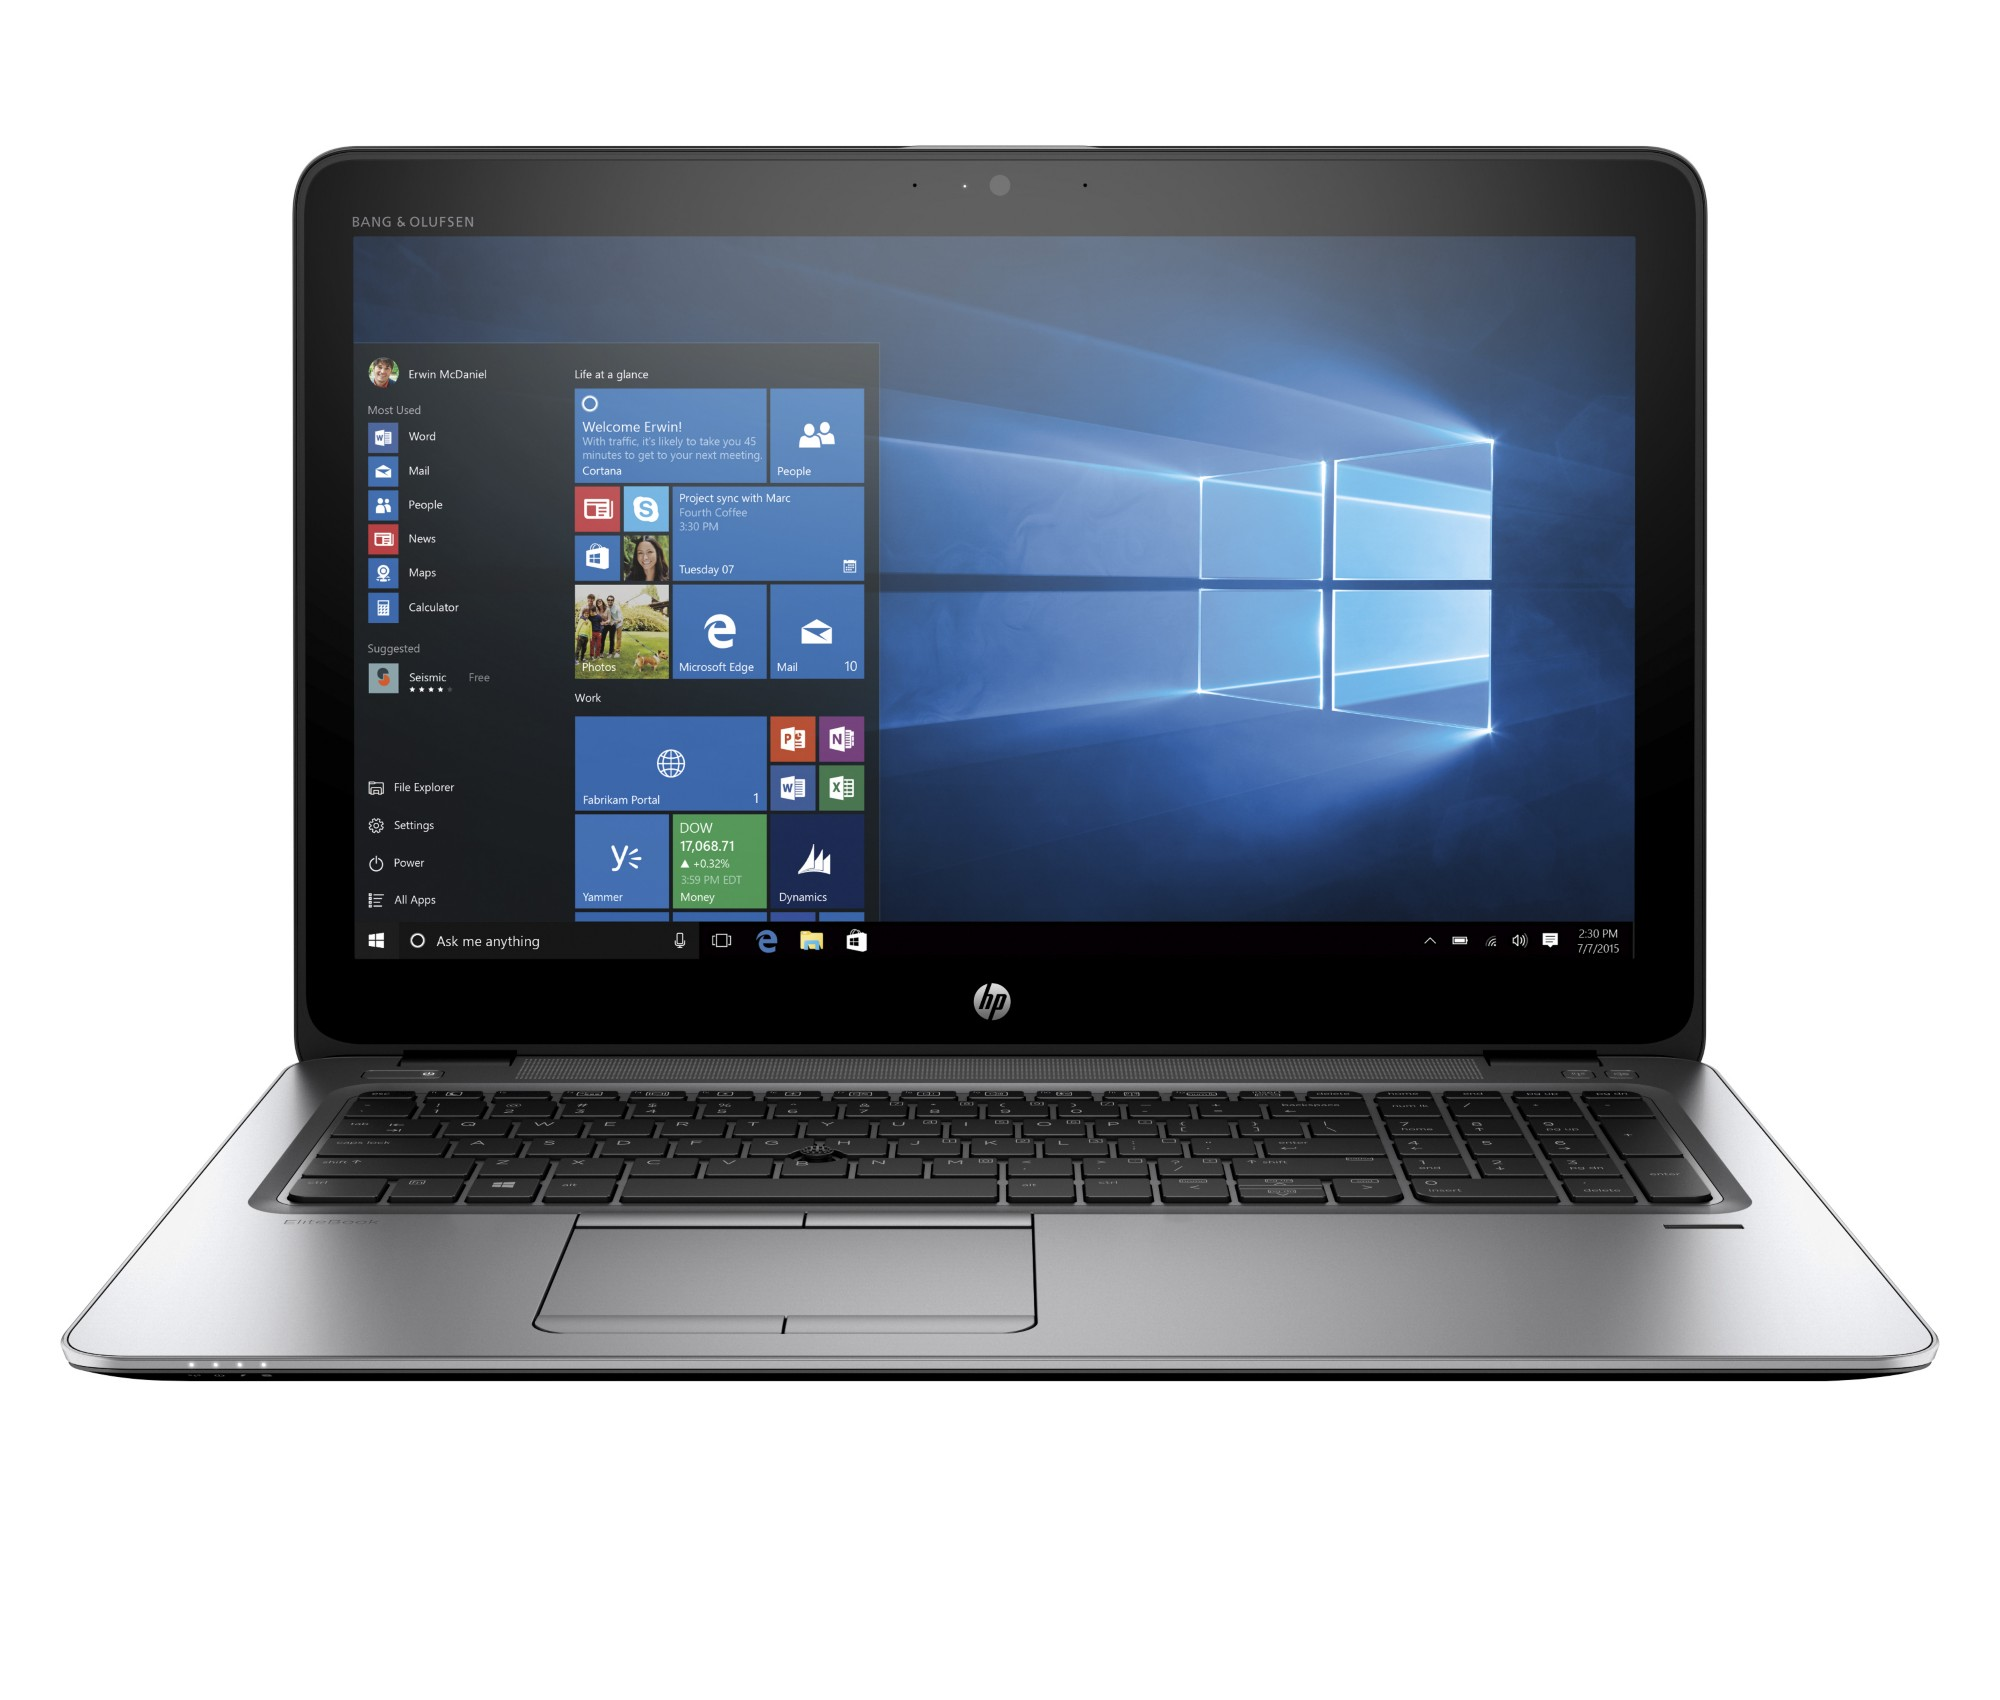 HP EliteBook 1040 G3 Notebook PC